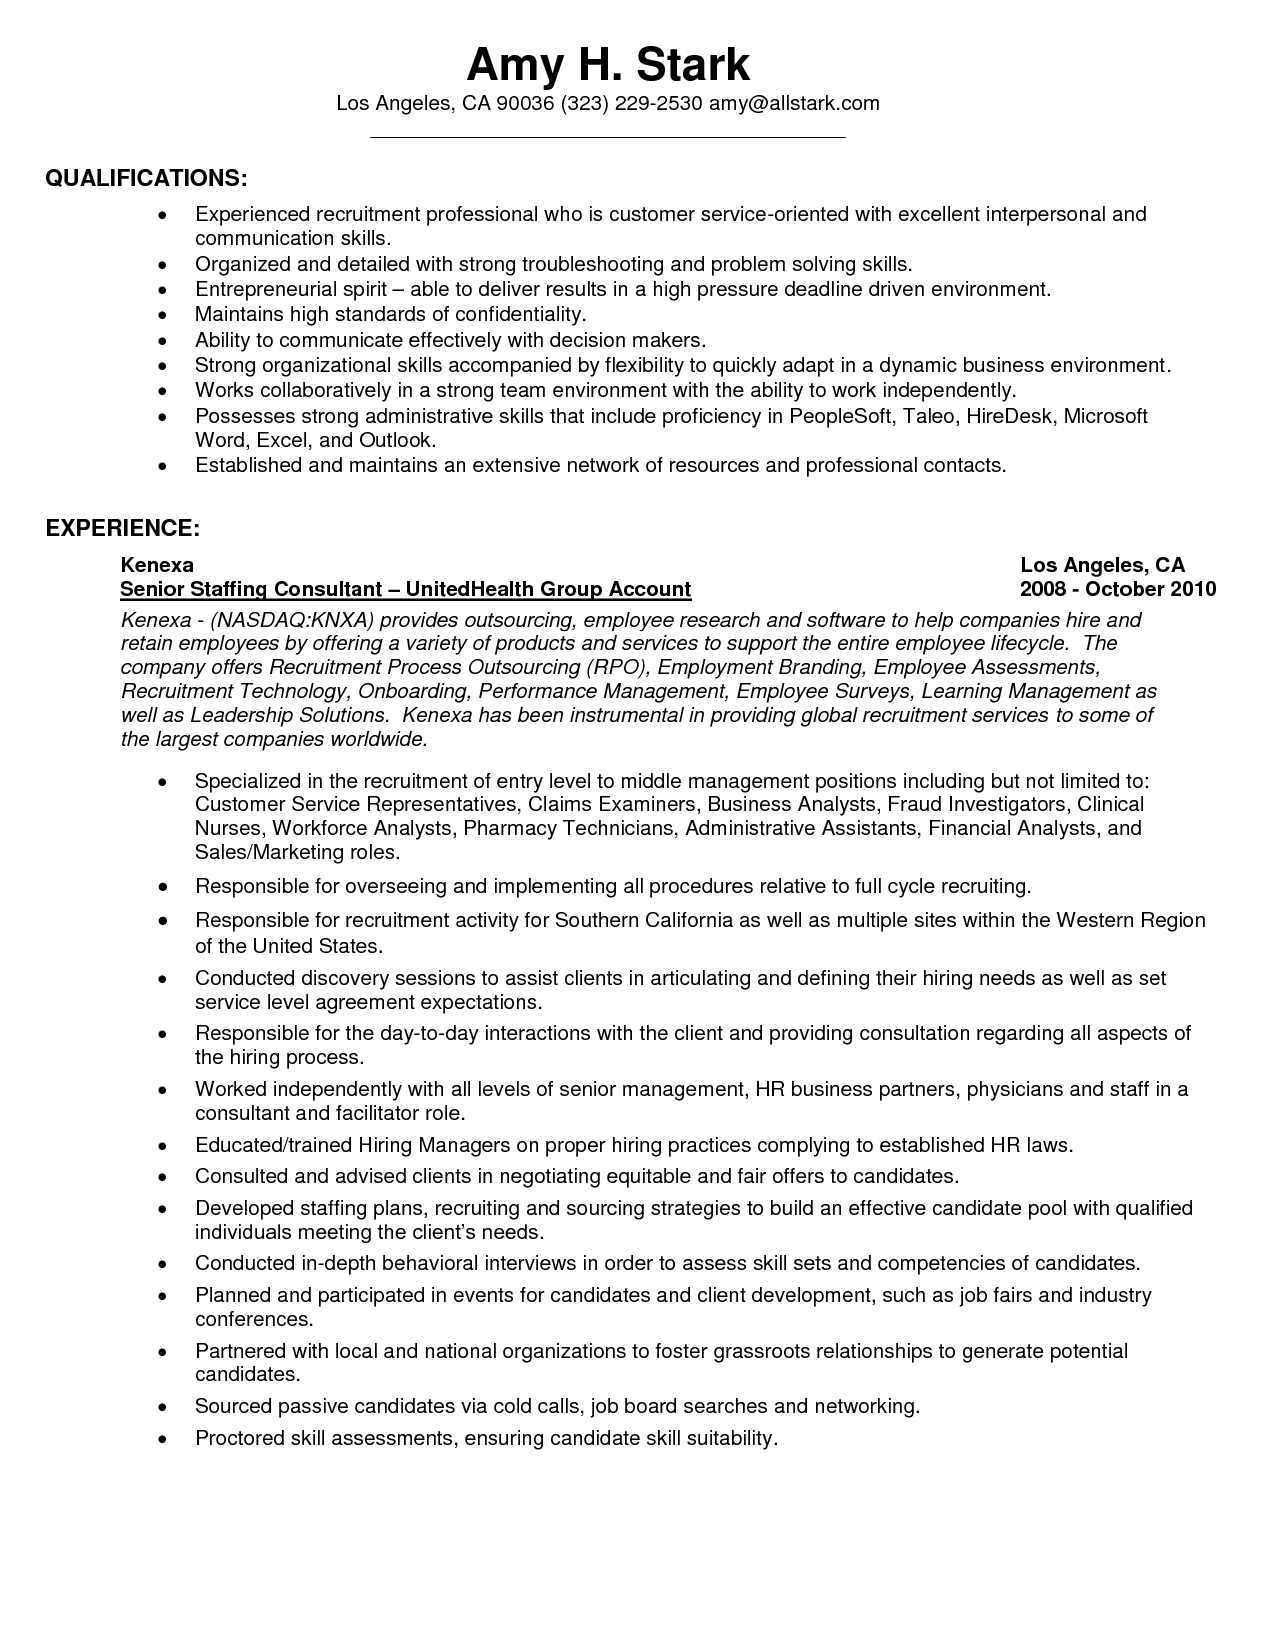 example of a strong resume